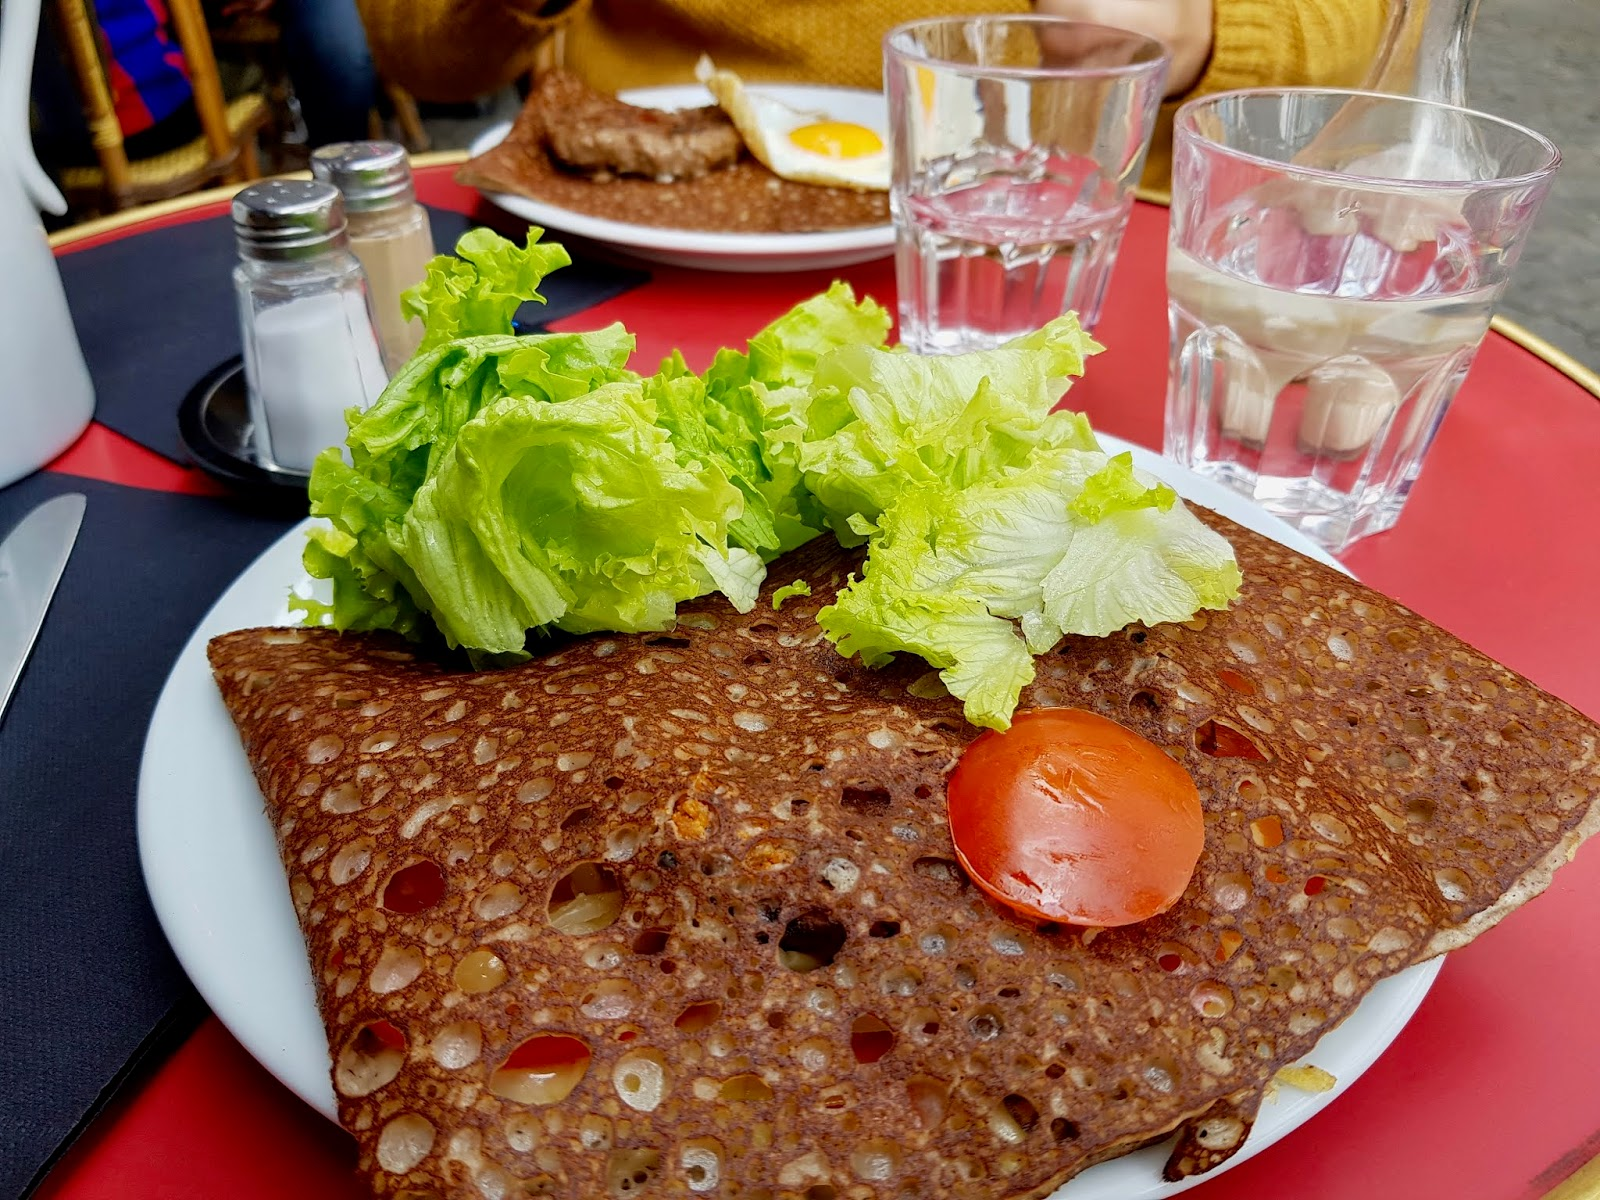 crêpe with salad leaves on top, some onions and peppers visible within